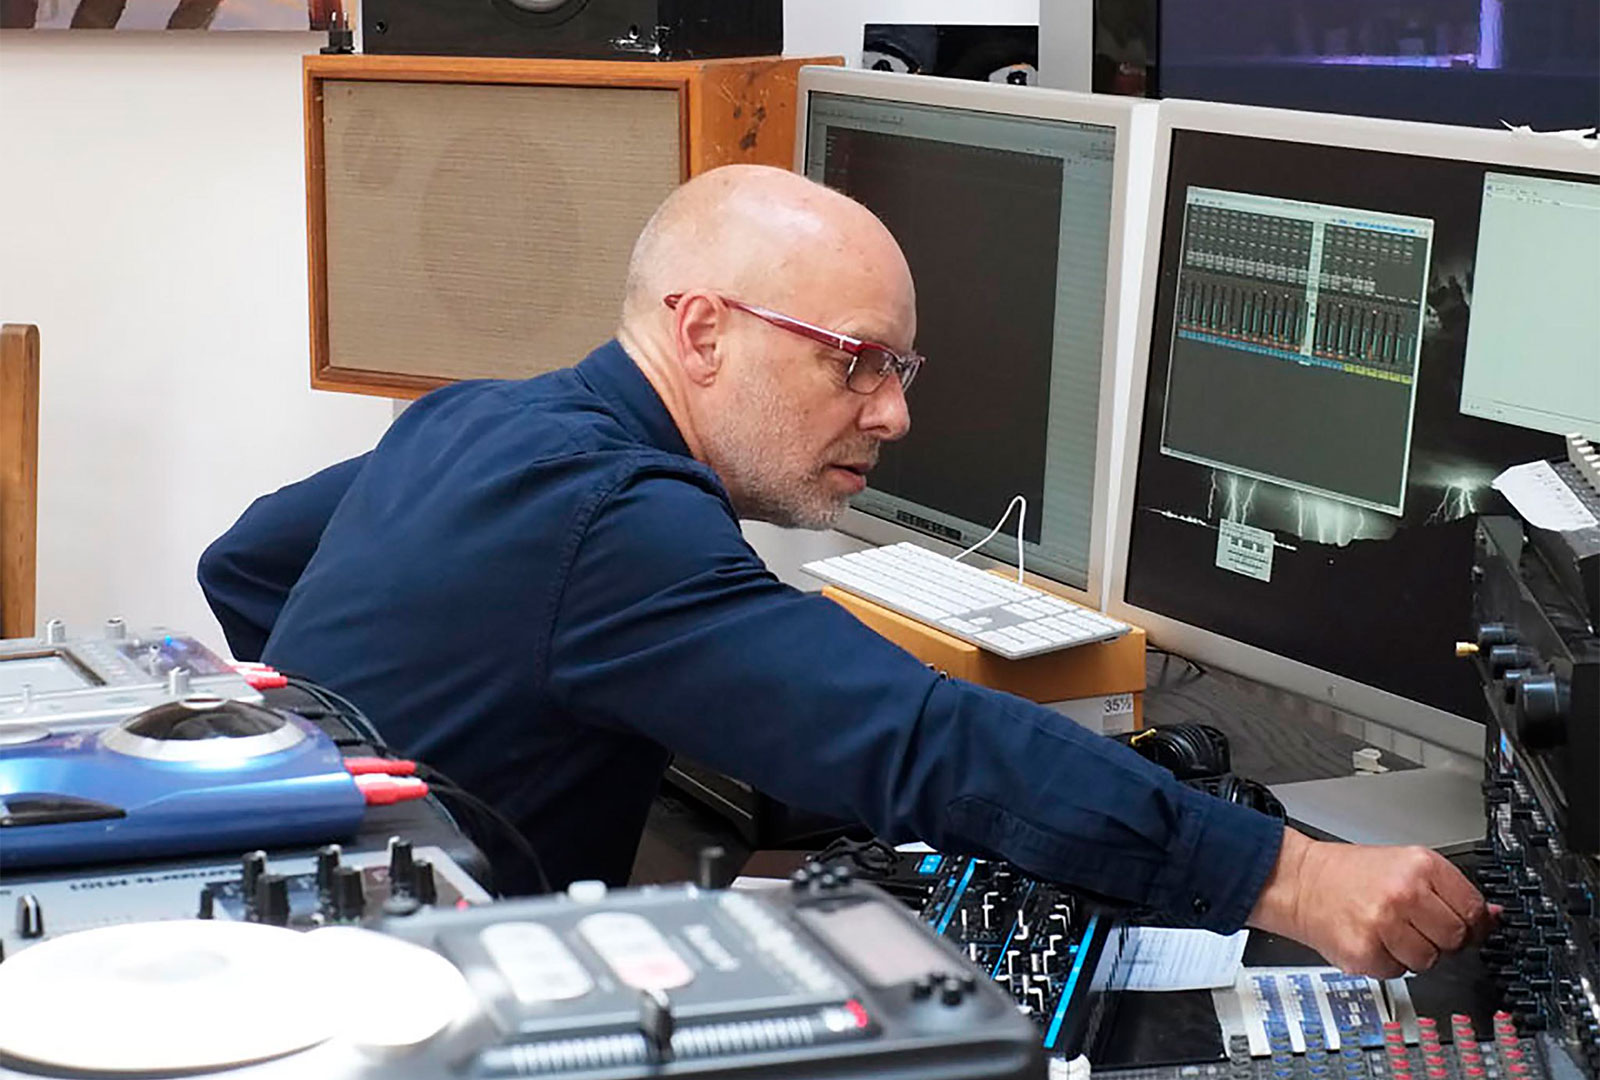 Editan soundtrack de Brian Eno para documental sobre Dieter Rams